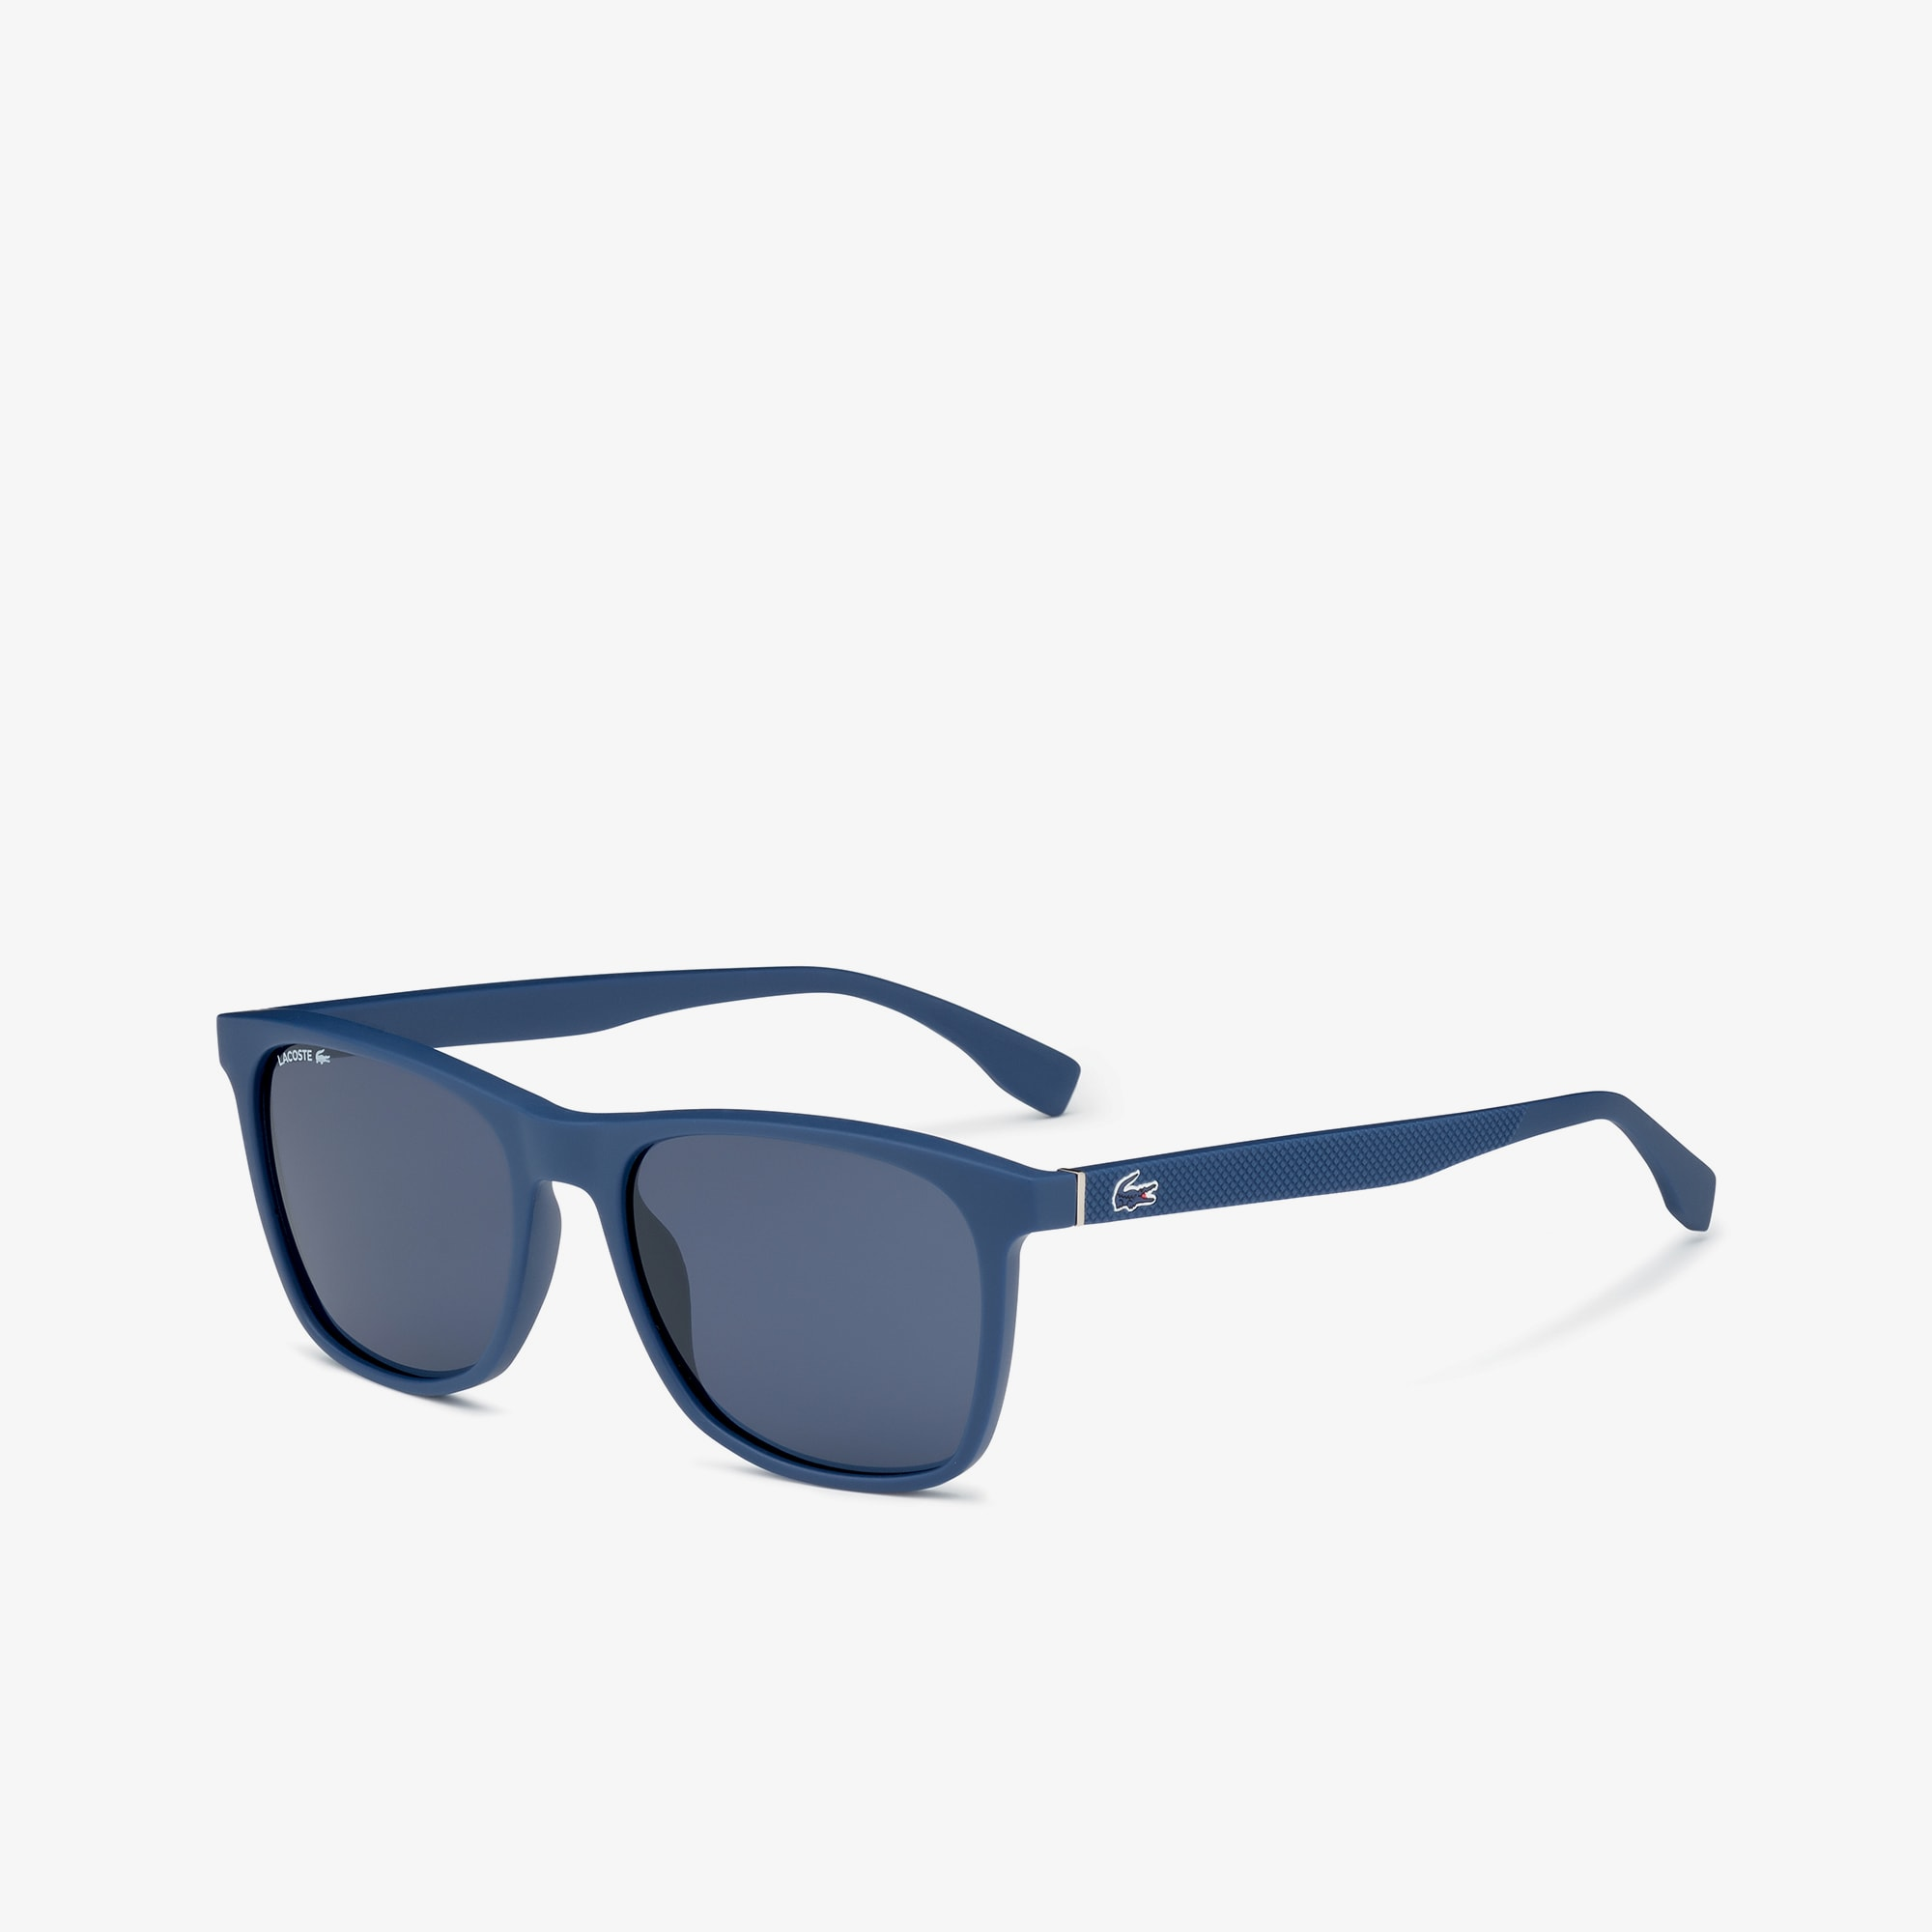 Modified Rectangle Plastic L.12.12 Premium Sunglasses